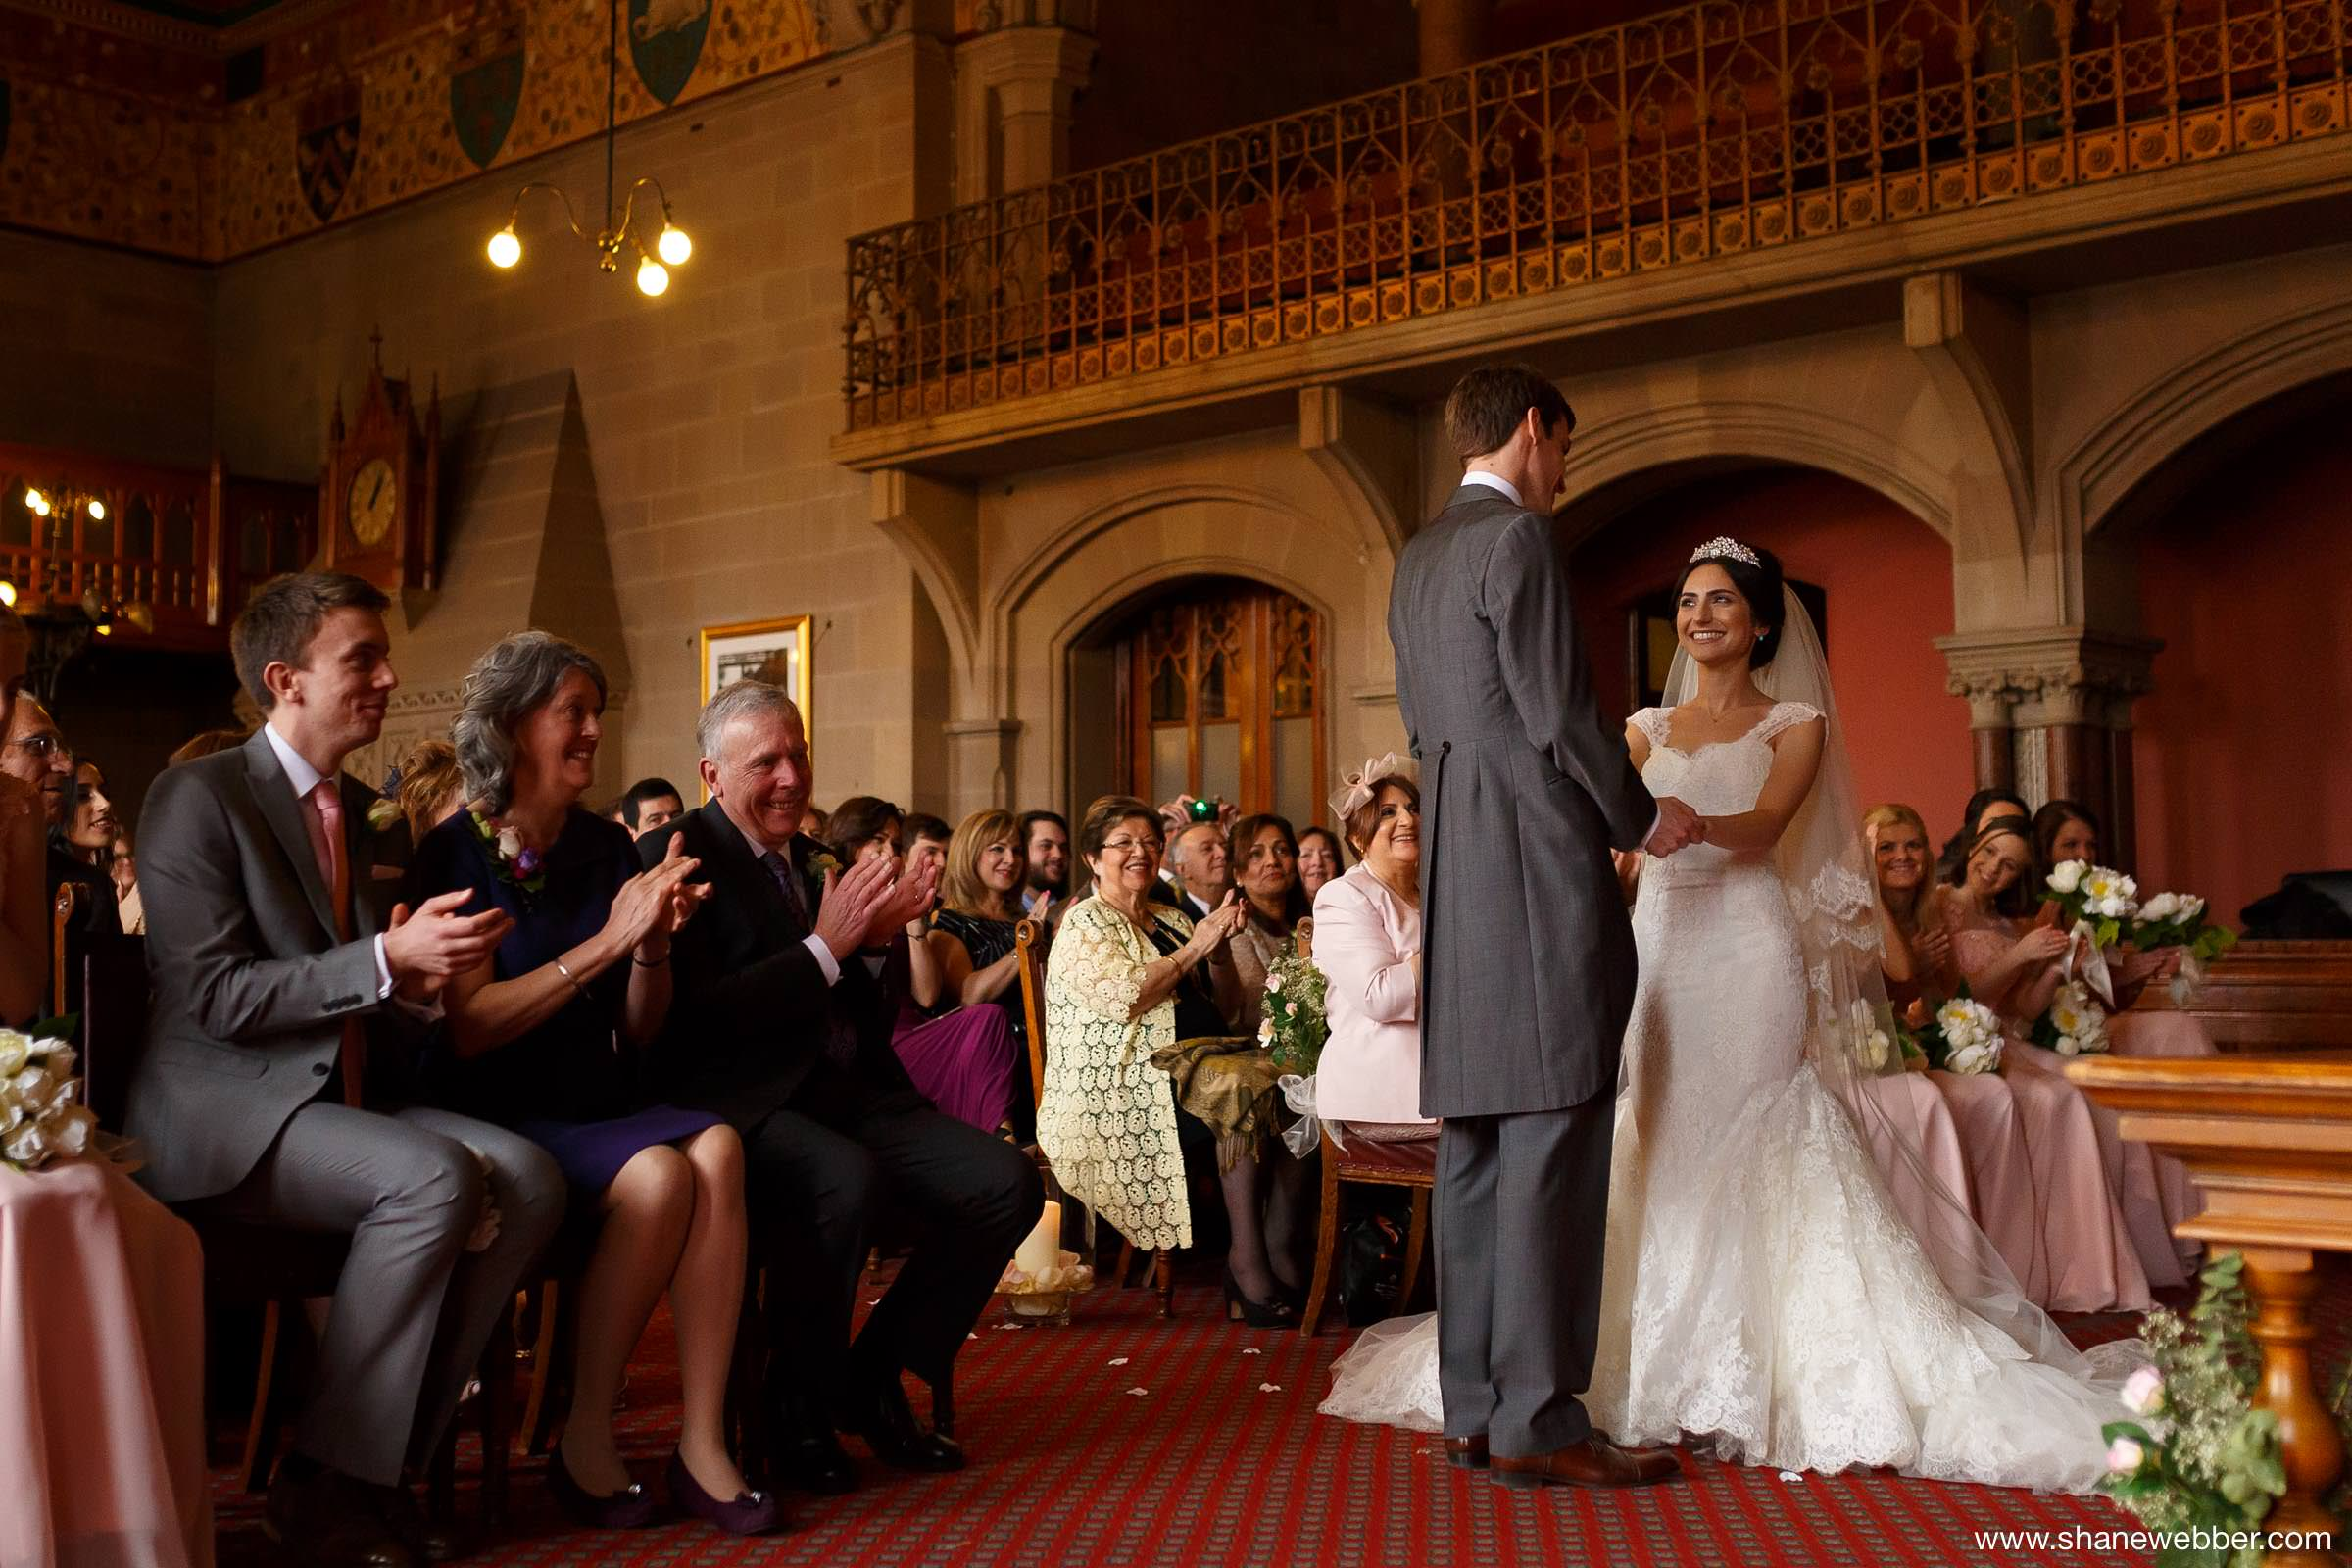 Wedding ceremony at the Manchester Town Hall